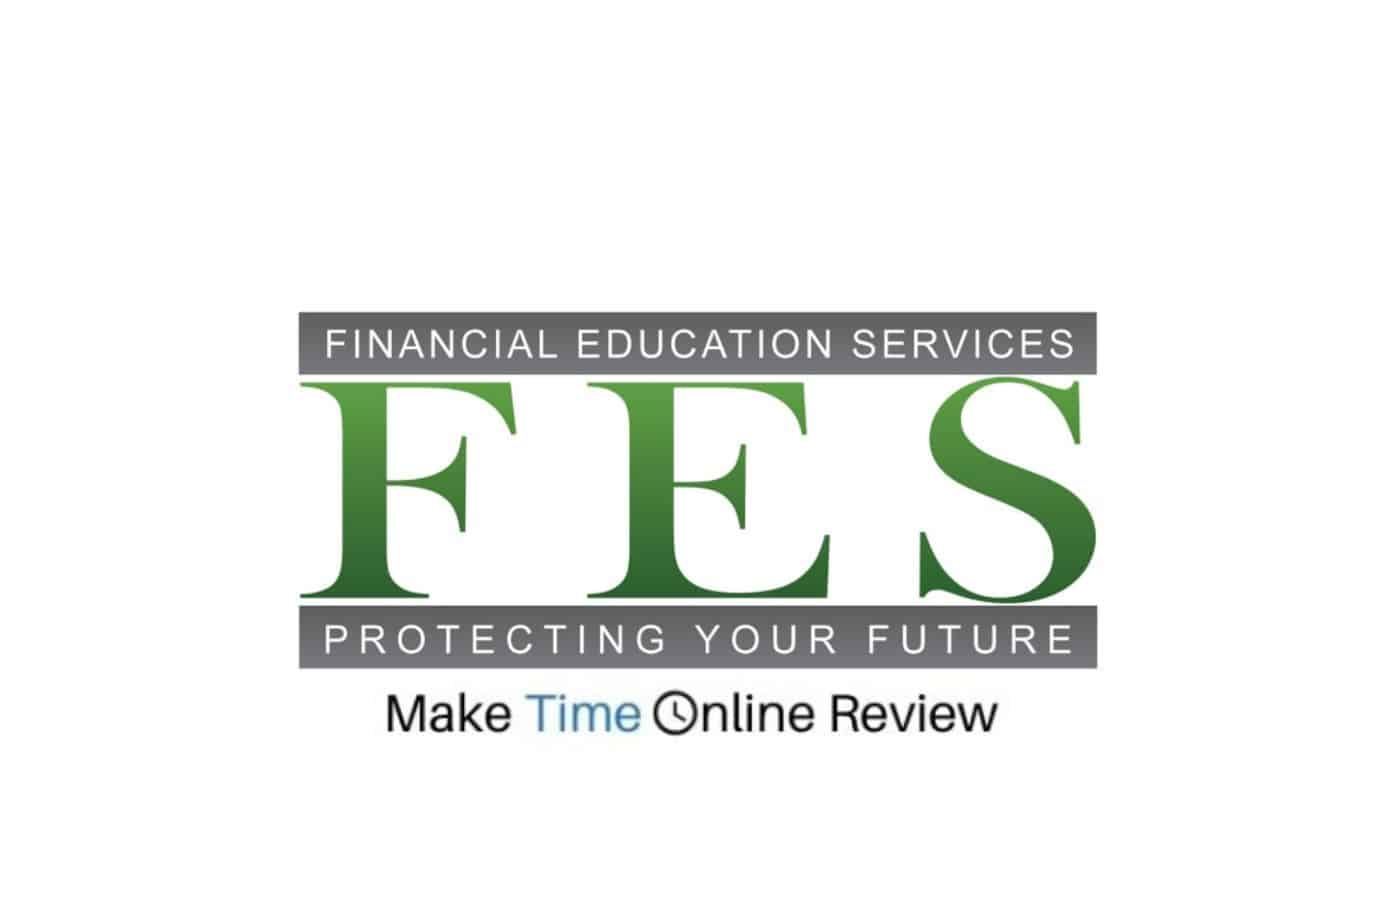 Is Financial Education Services a Scam: Logo